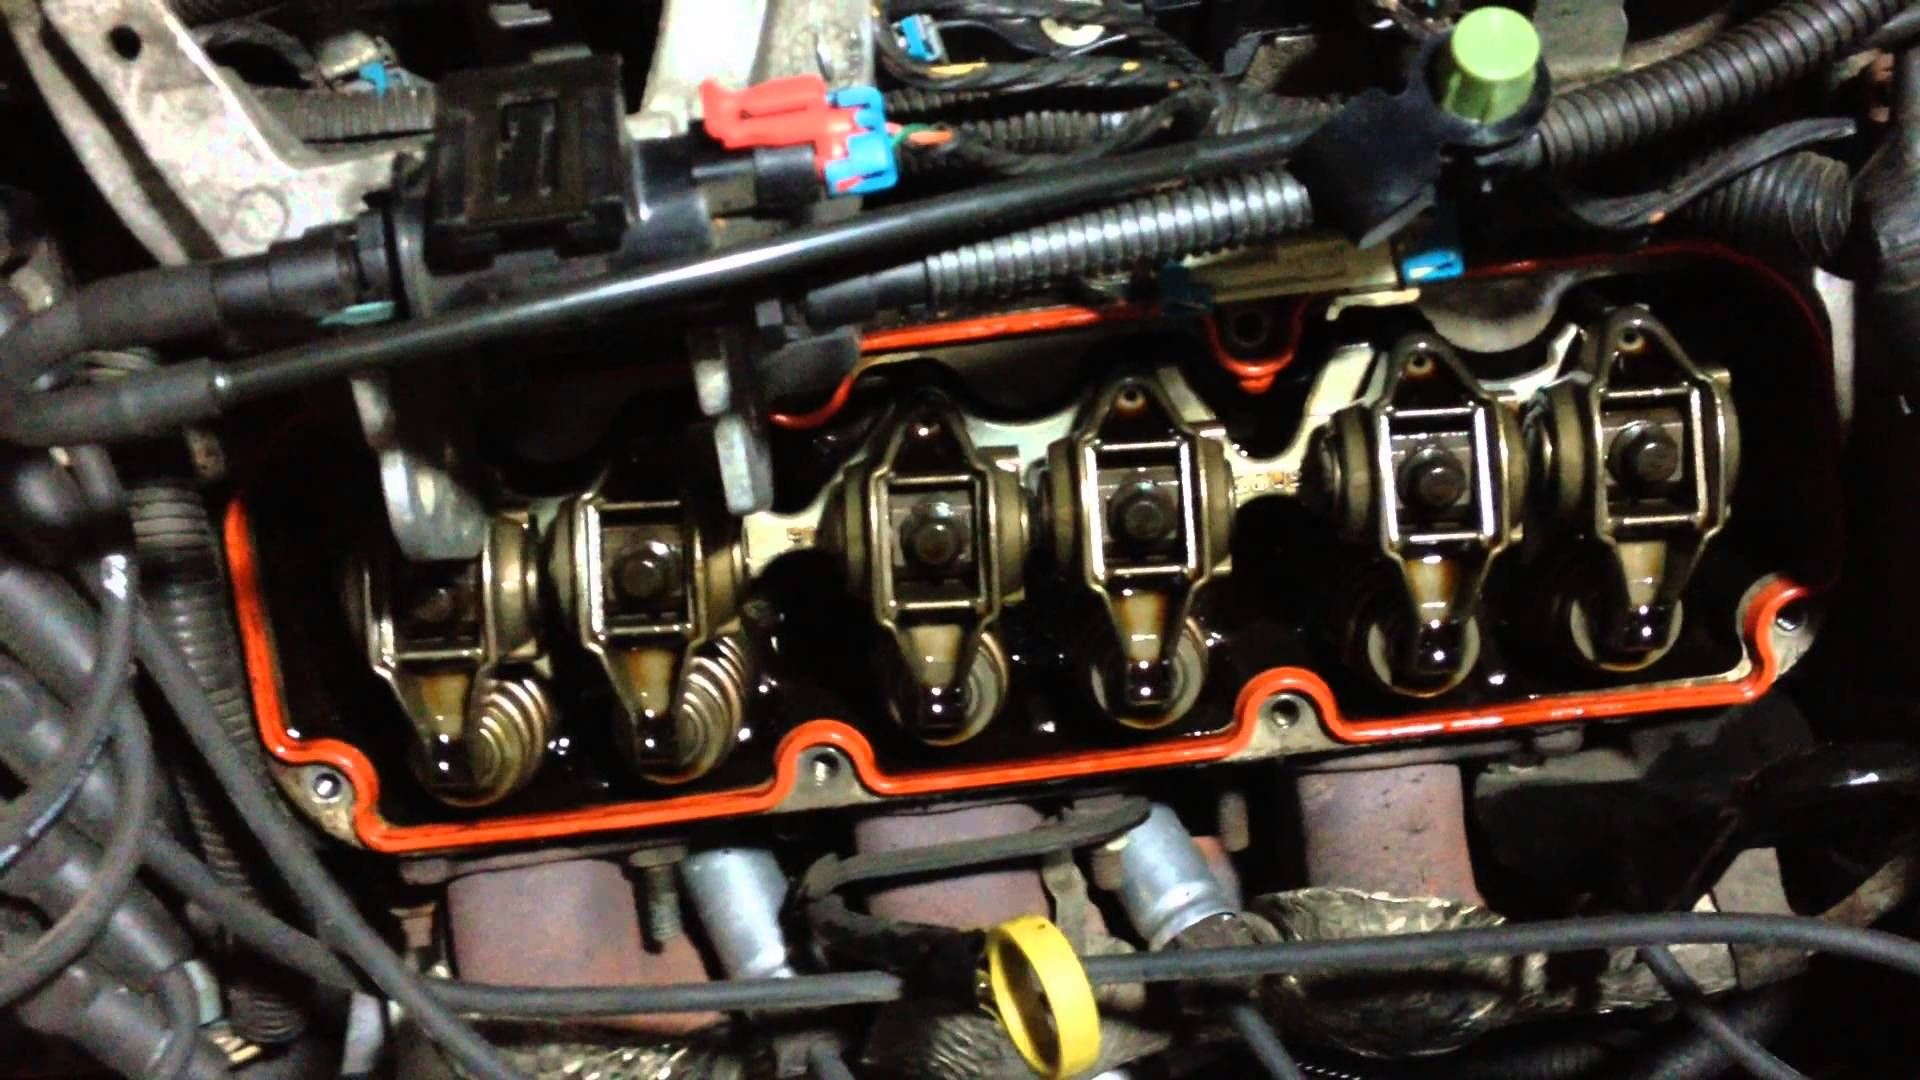 Gm 3800 Series Ii Valve Cover Gasket Replacement With Minimal Removal Valve Cover Impala Youtube